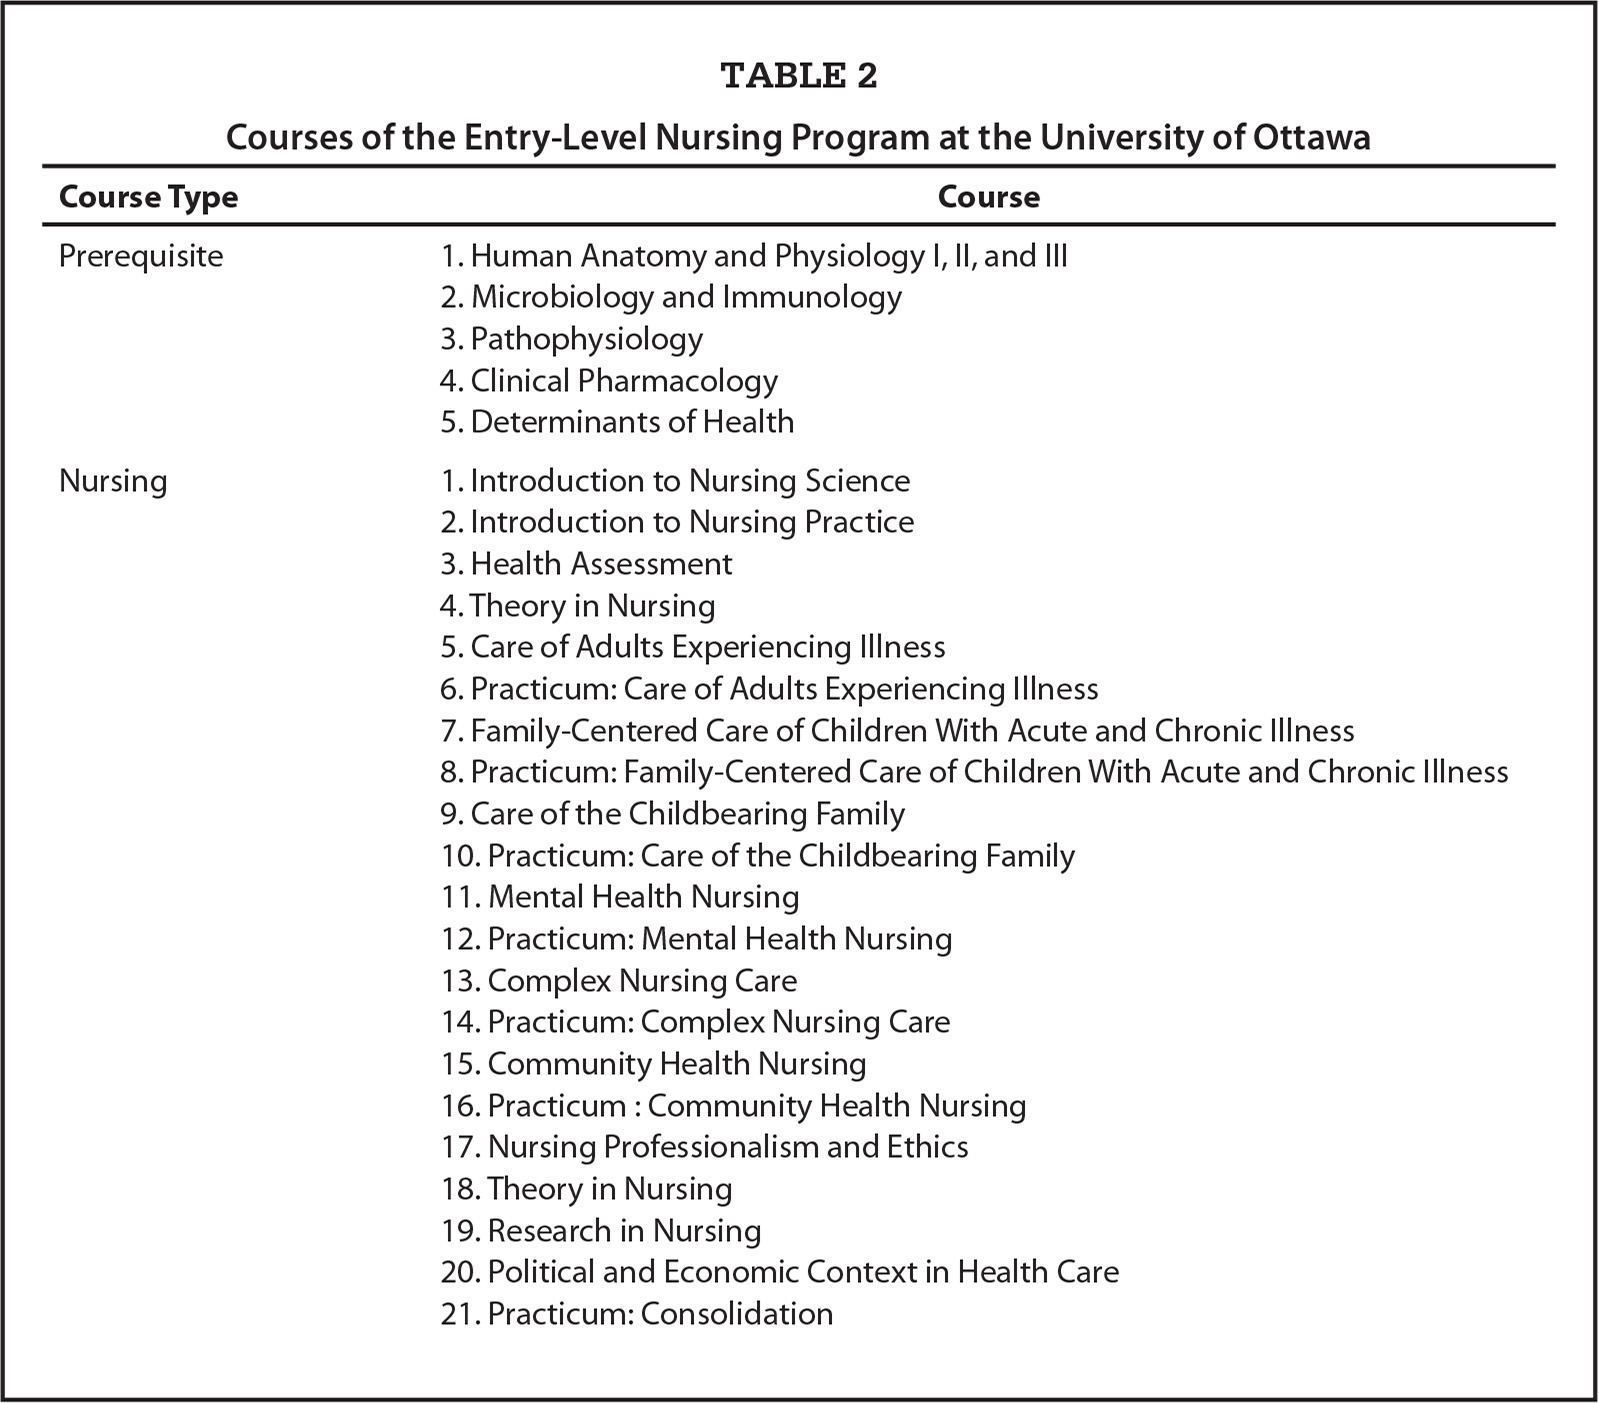 Courses of the Entry-Level Nursing Program at the University of Ottawa